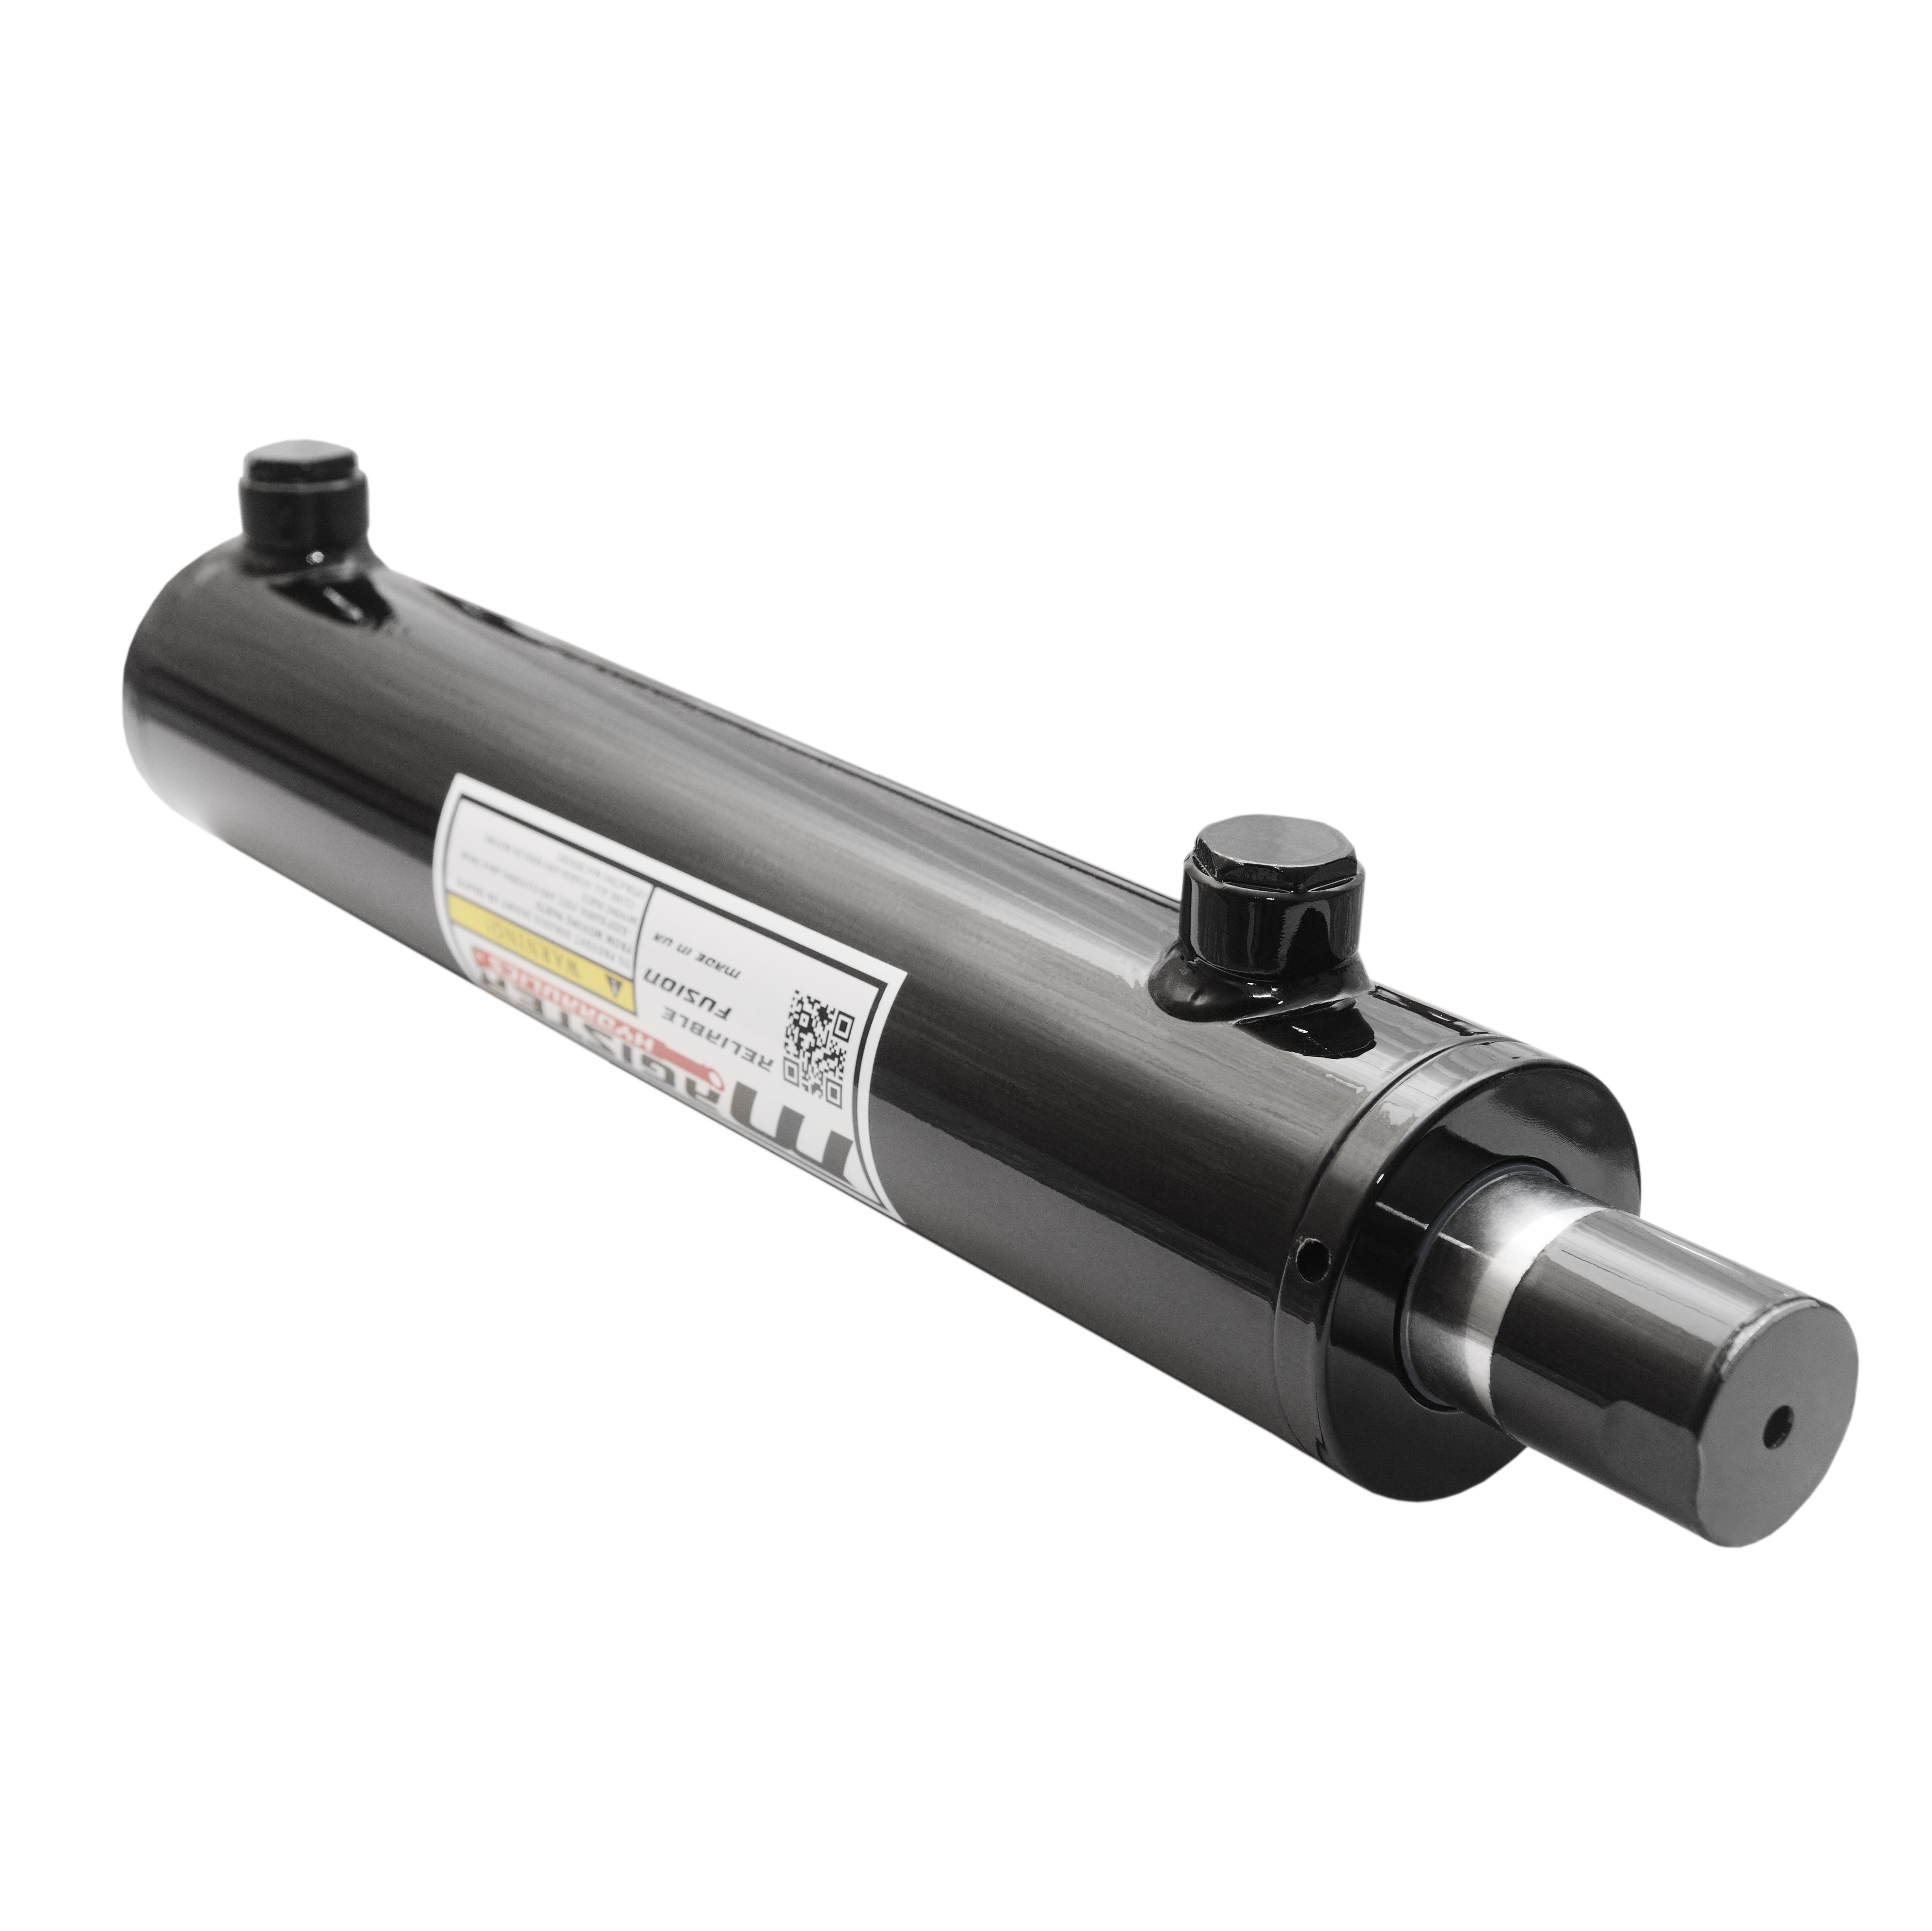 2 bore x 17 stroke hydraulic cylinder, welded universal double acting cylinder | Magister Hydraulics